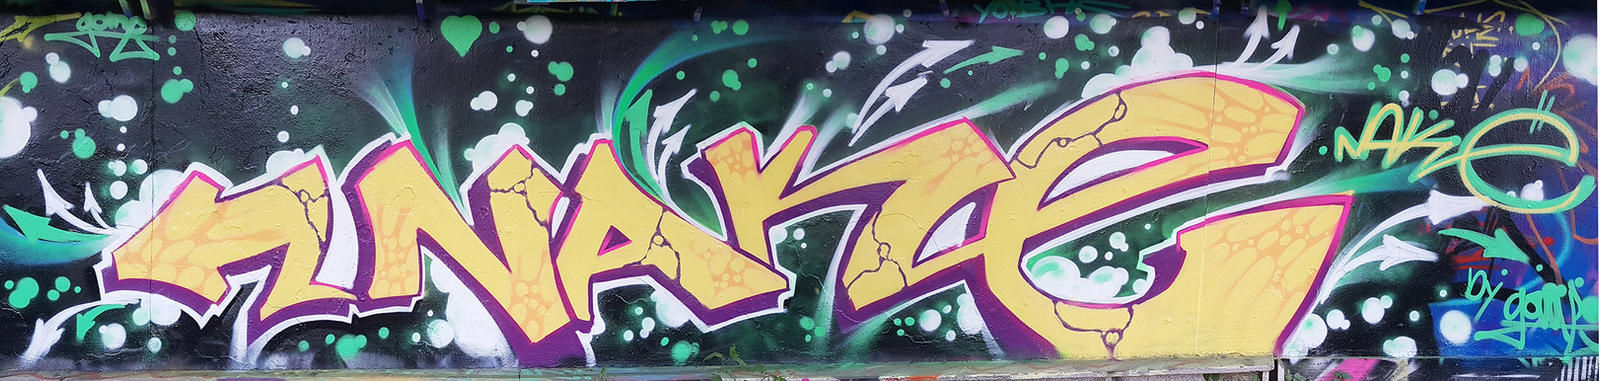 NAKE by gome